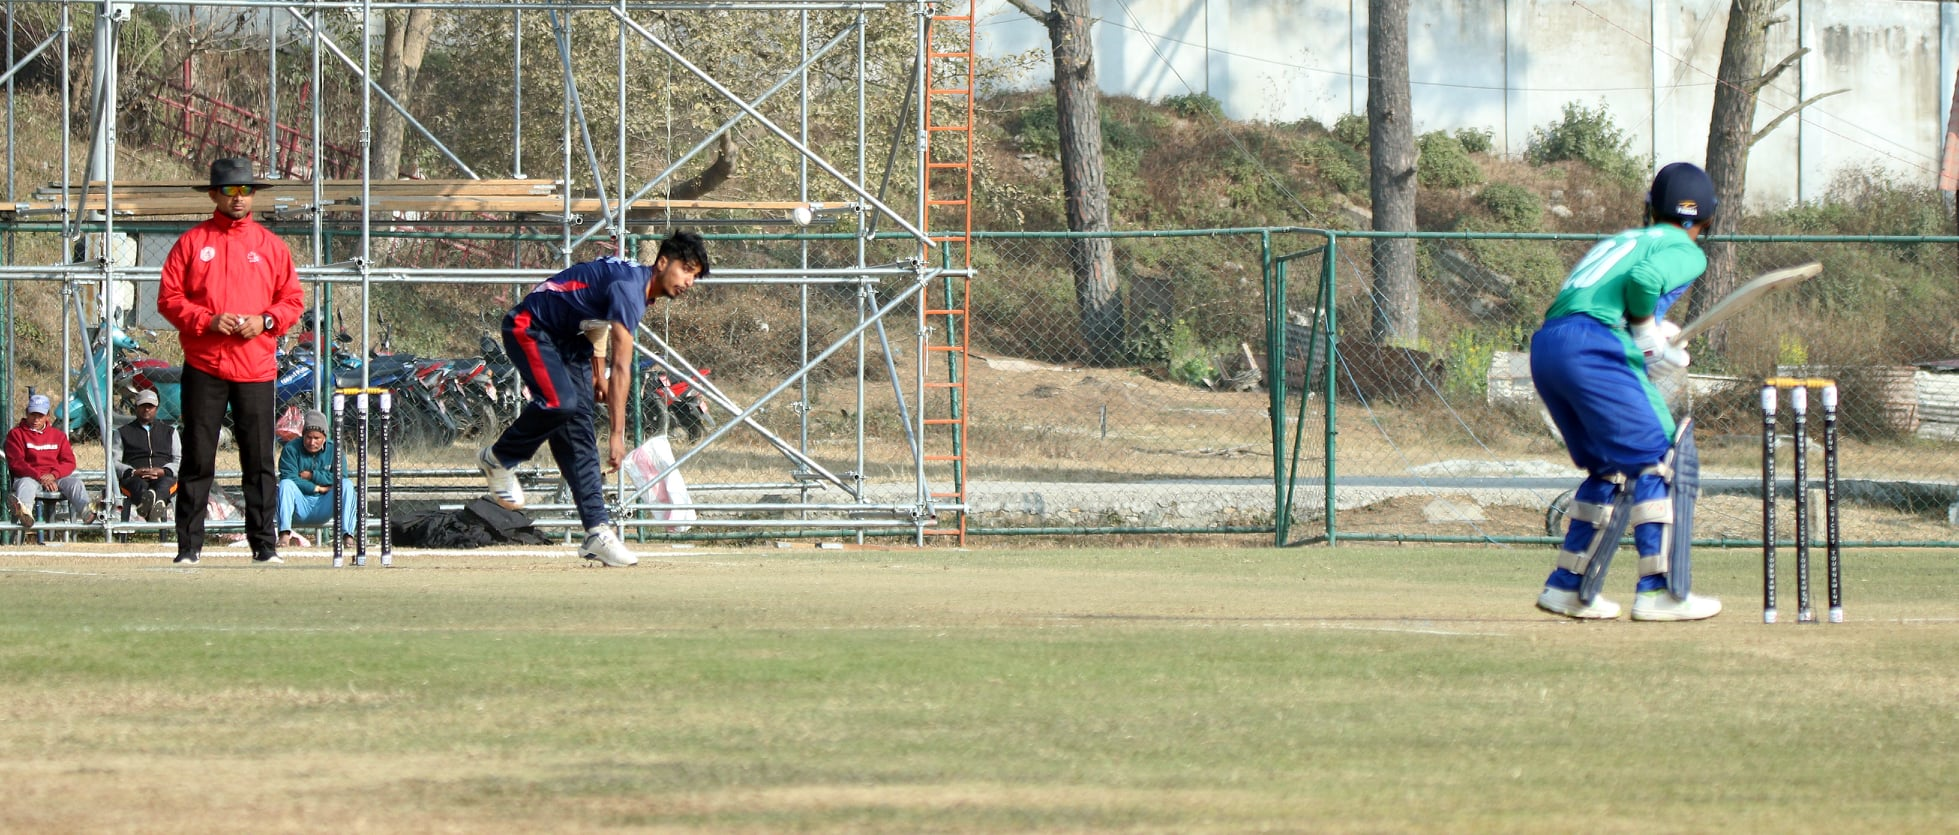 pmcup cricket game 9